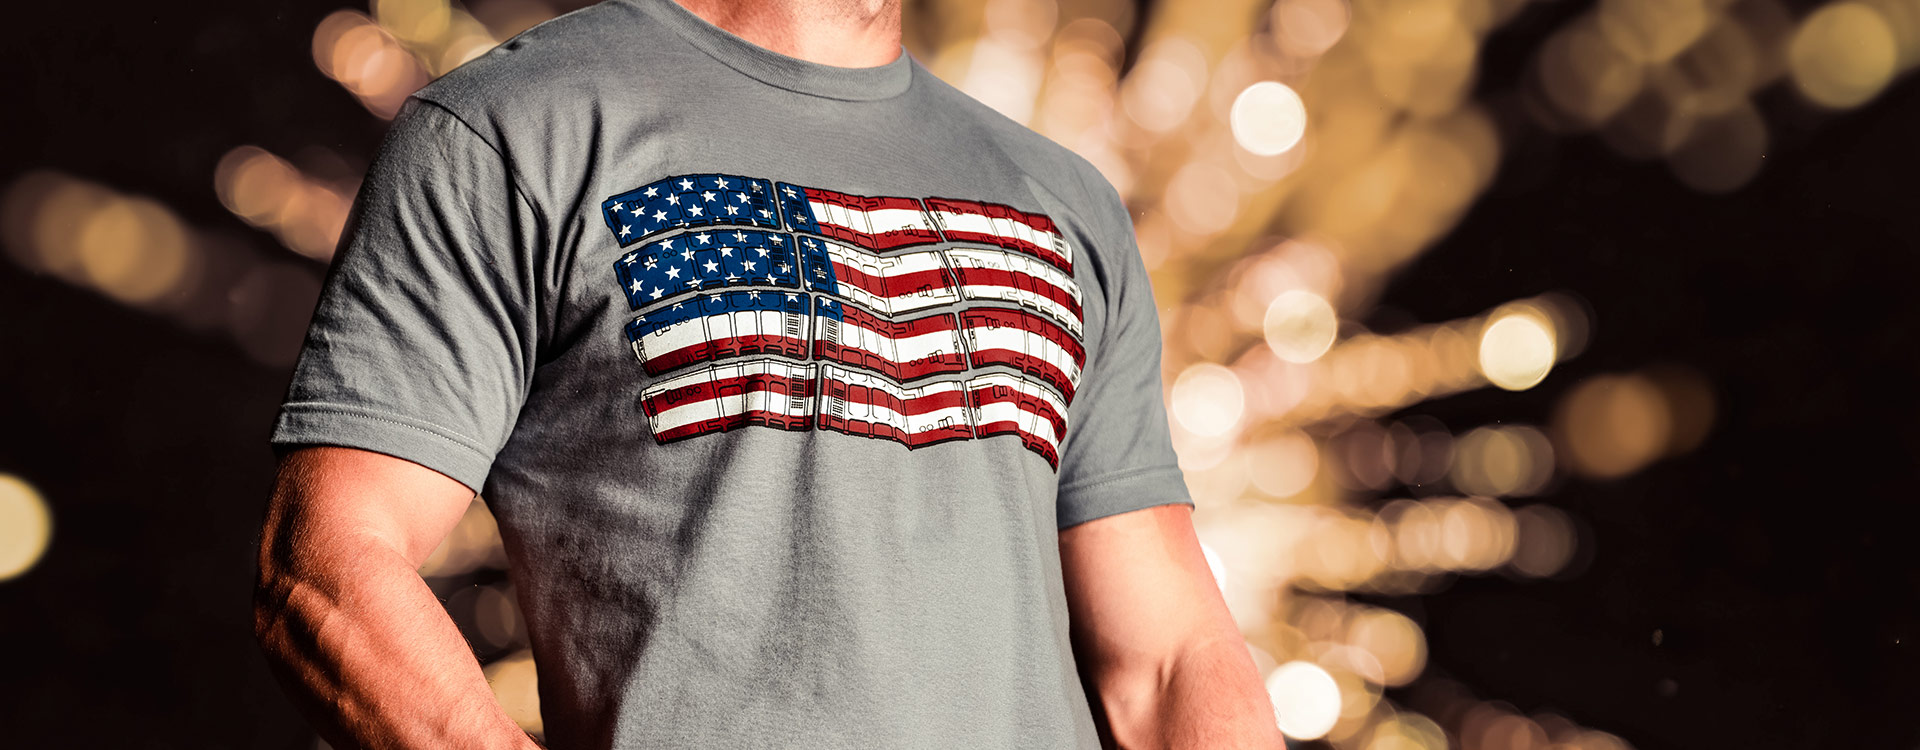 Magpul PMAG-Flag Cotton T-Shirt being worn by man with a firework shell bursting in the background